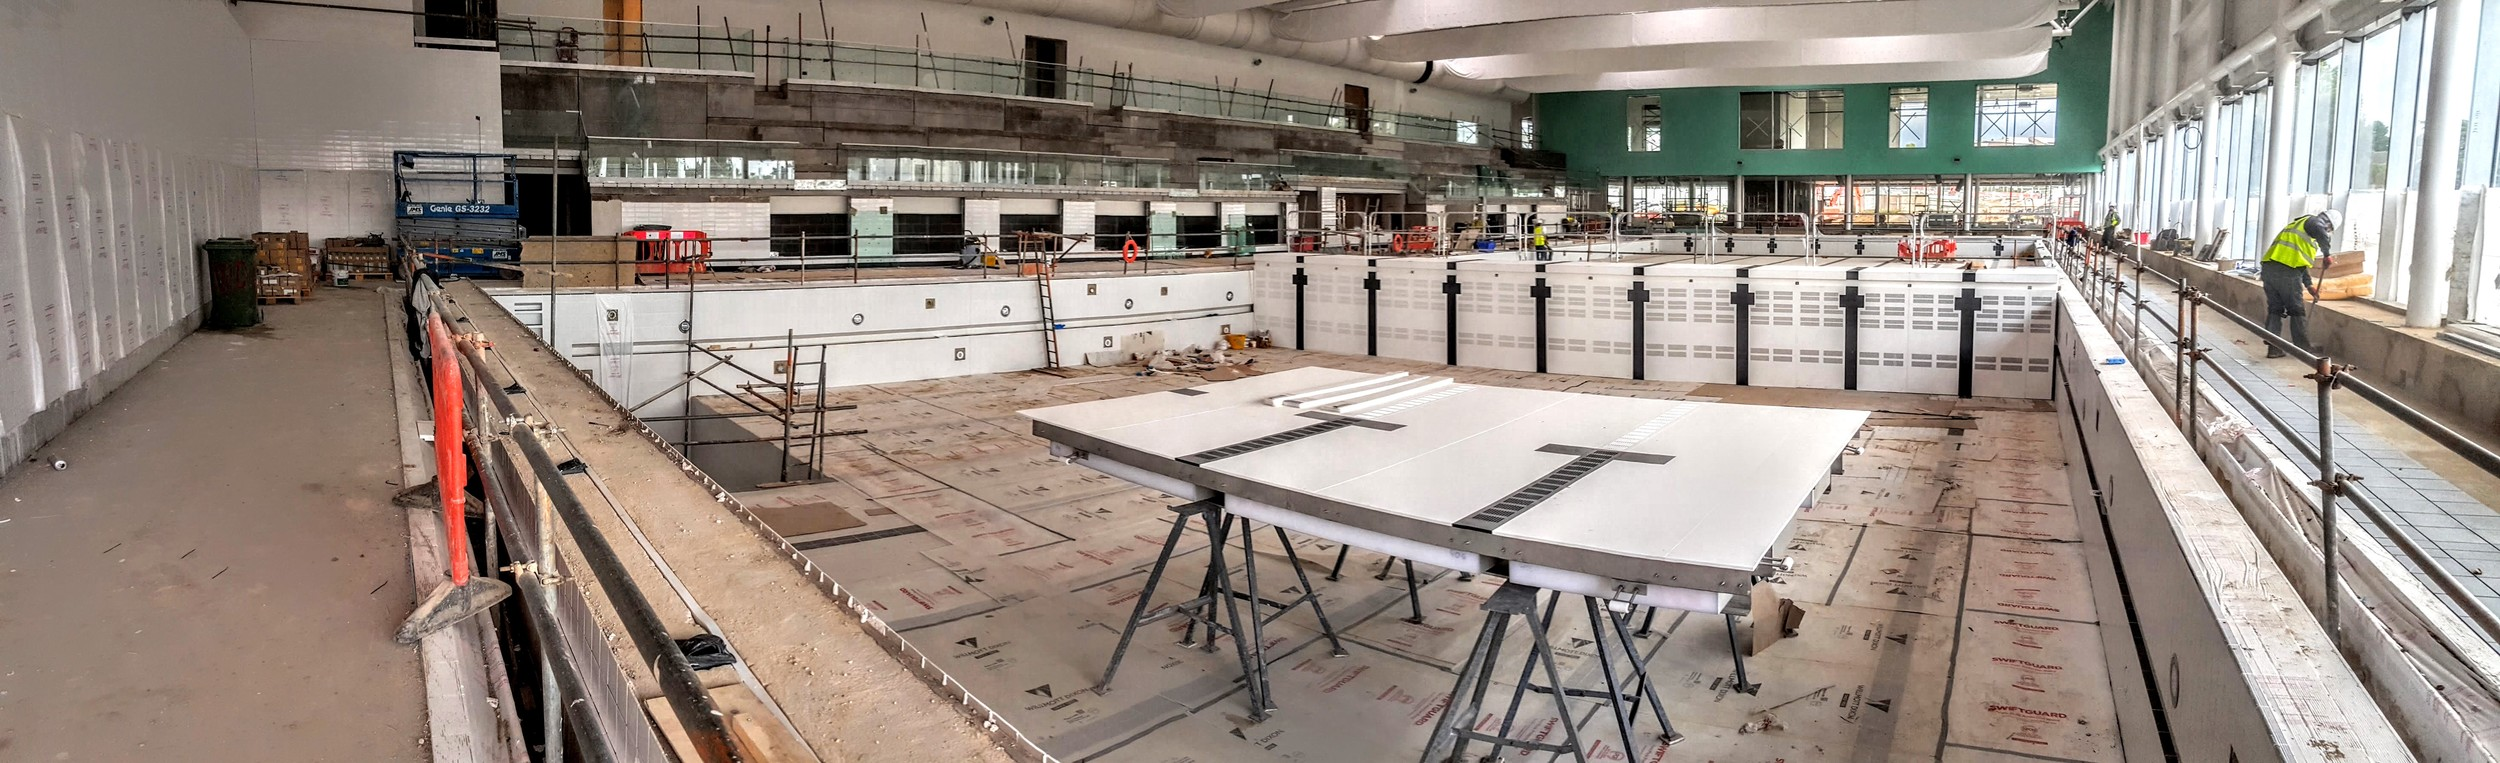 Looking down the length of the 50m pool with moving bulkhead raised